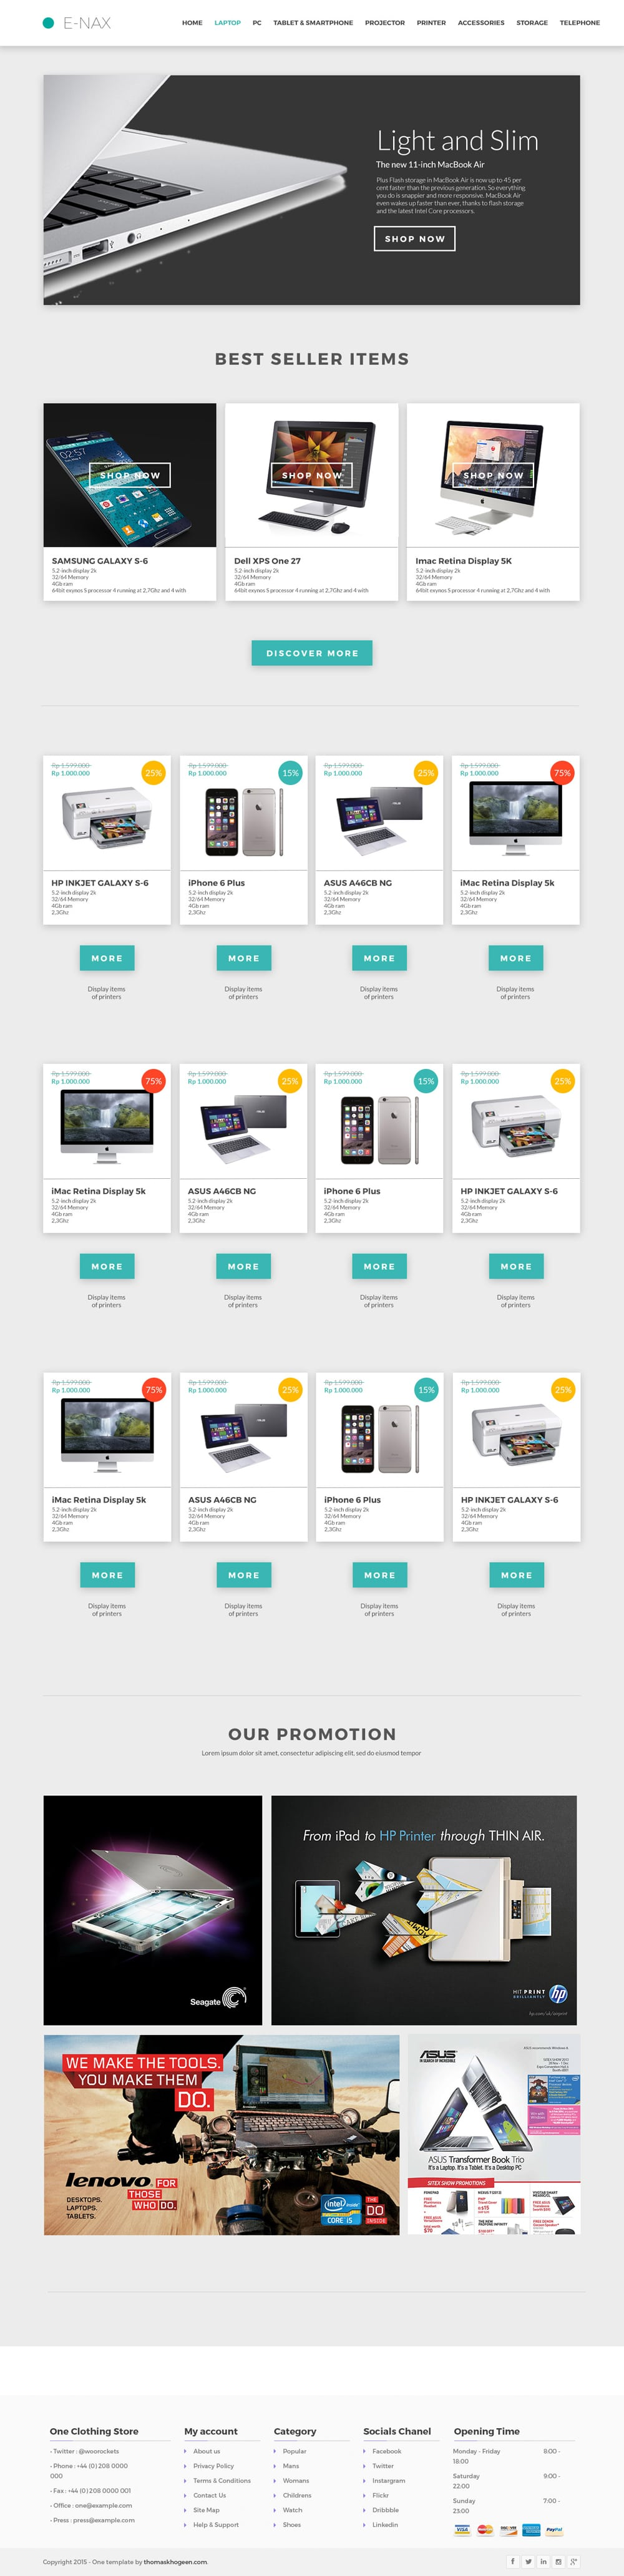 Fine 1 Page Proposal Template Big 1 Year Experience Resume Format For Java Developer Solid 1 Year Experience Resume Format Free Download 12 Page Booklet Template Young 2013 Calendar Templates Pink24 Hour Calendar Template Latest Useful UI Elements PSD For E Commerce Websites